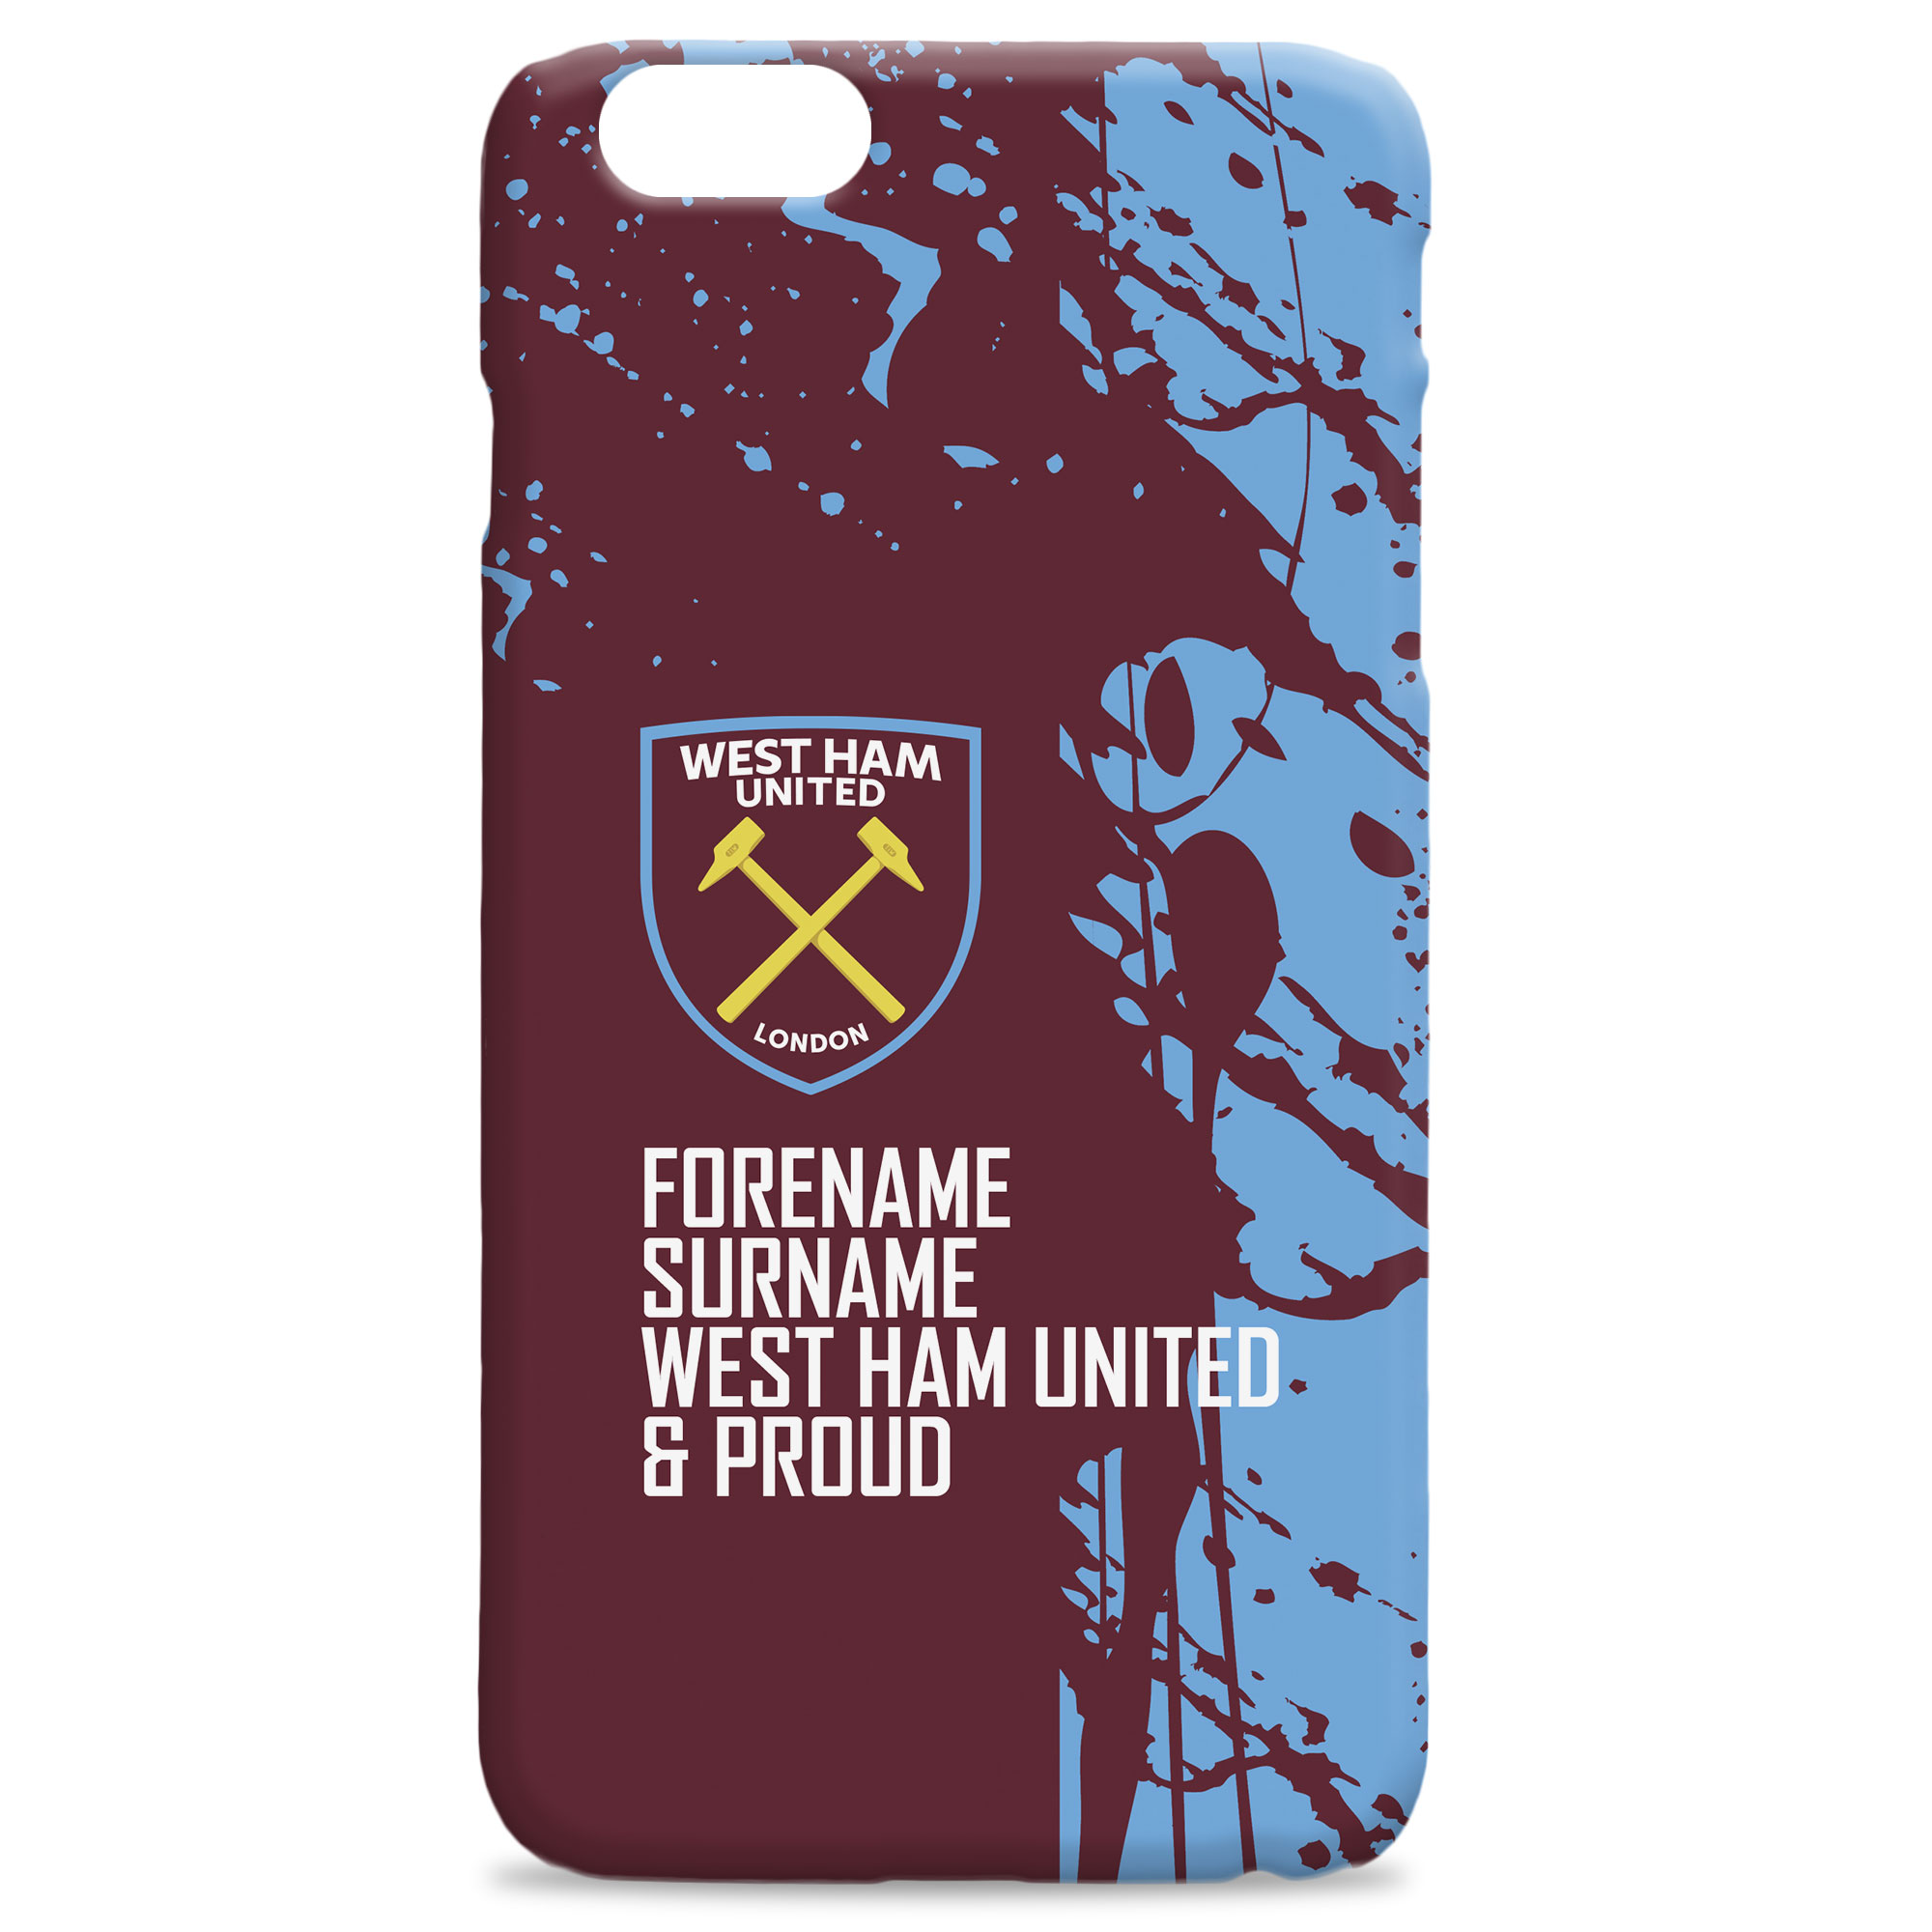 West Ham United FC Proud Hard Back Phone Case